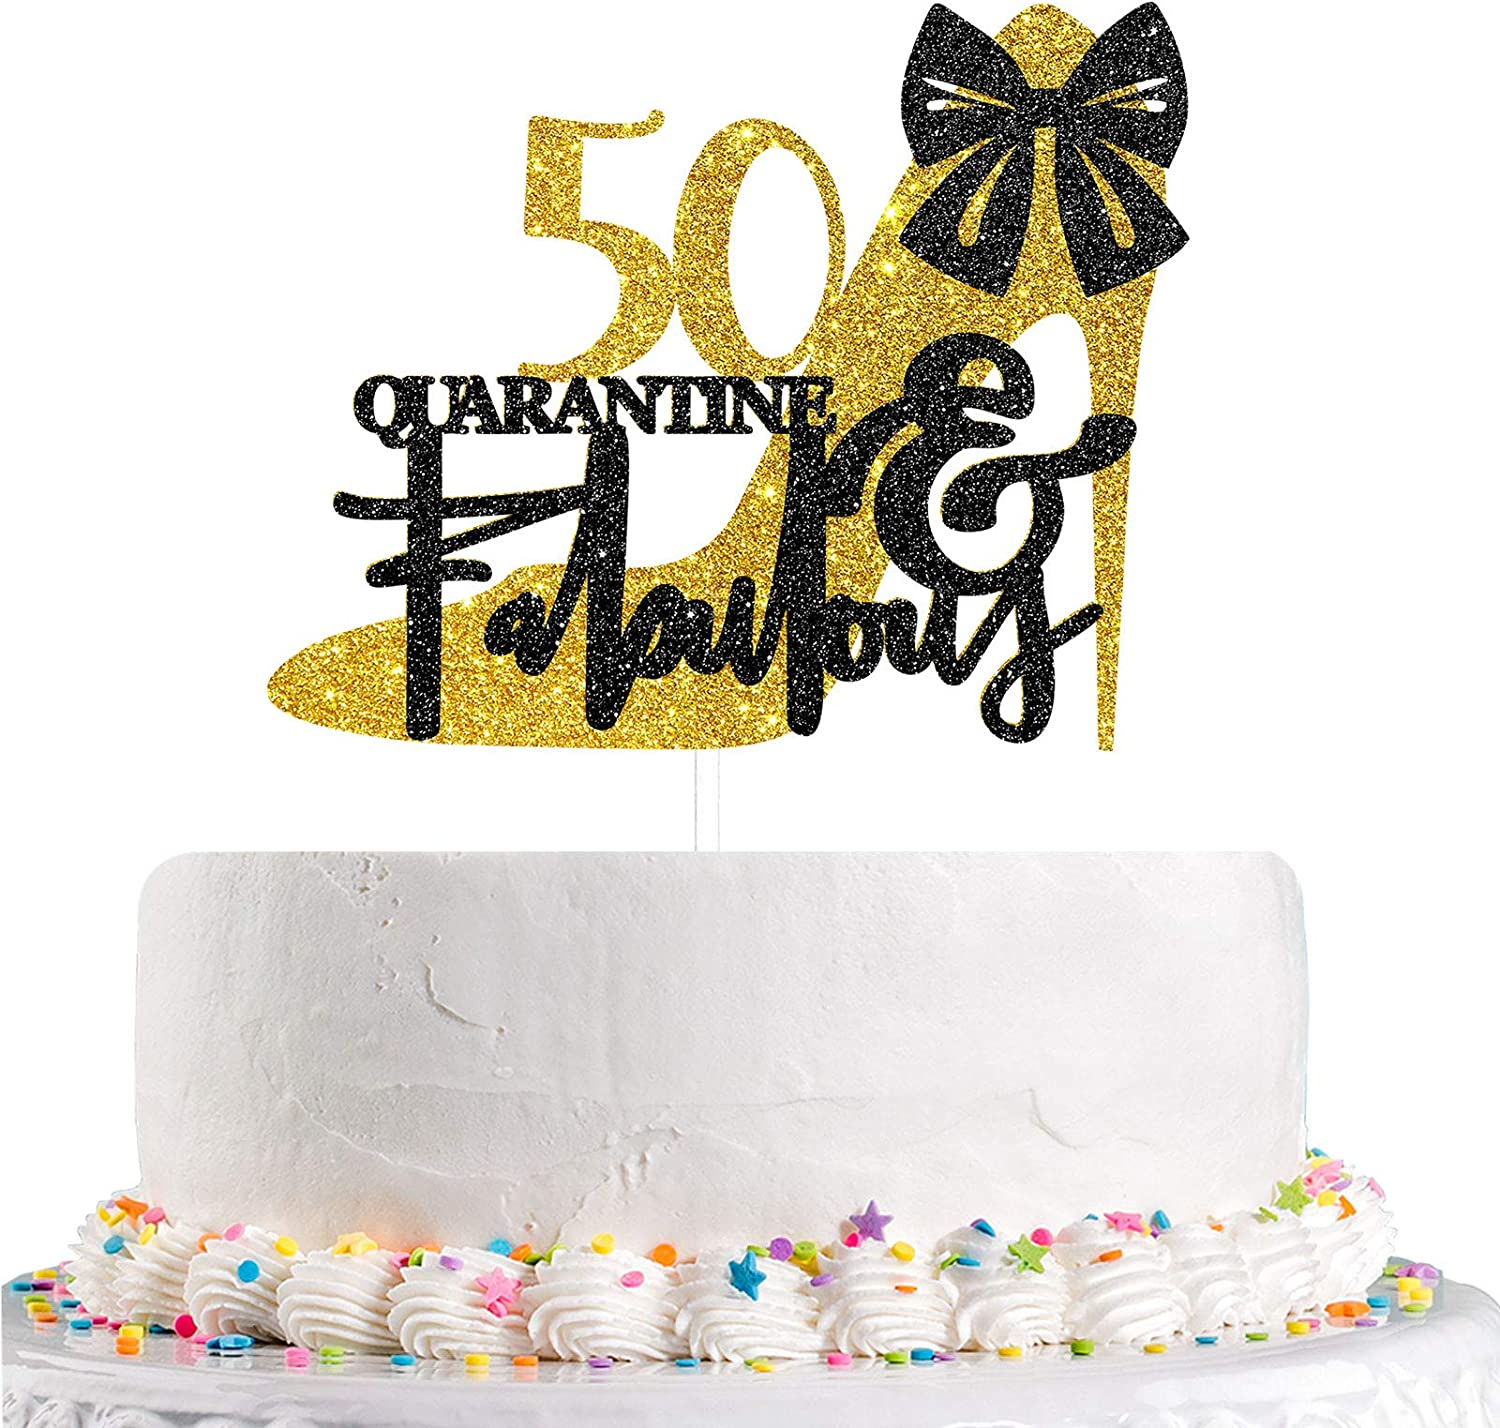 Talorine Gold Black Fifty & Fabulous Cake Topper for 50th Birthday Decor, 50 & Quarantine Fabulous, Women and Girls Fifty Theme Birthday Wedding Anniversary Party Cake Decorations Supplies Glitter